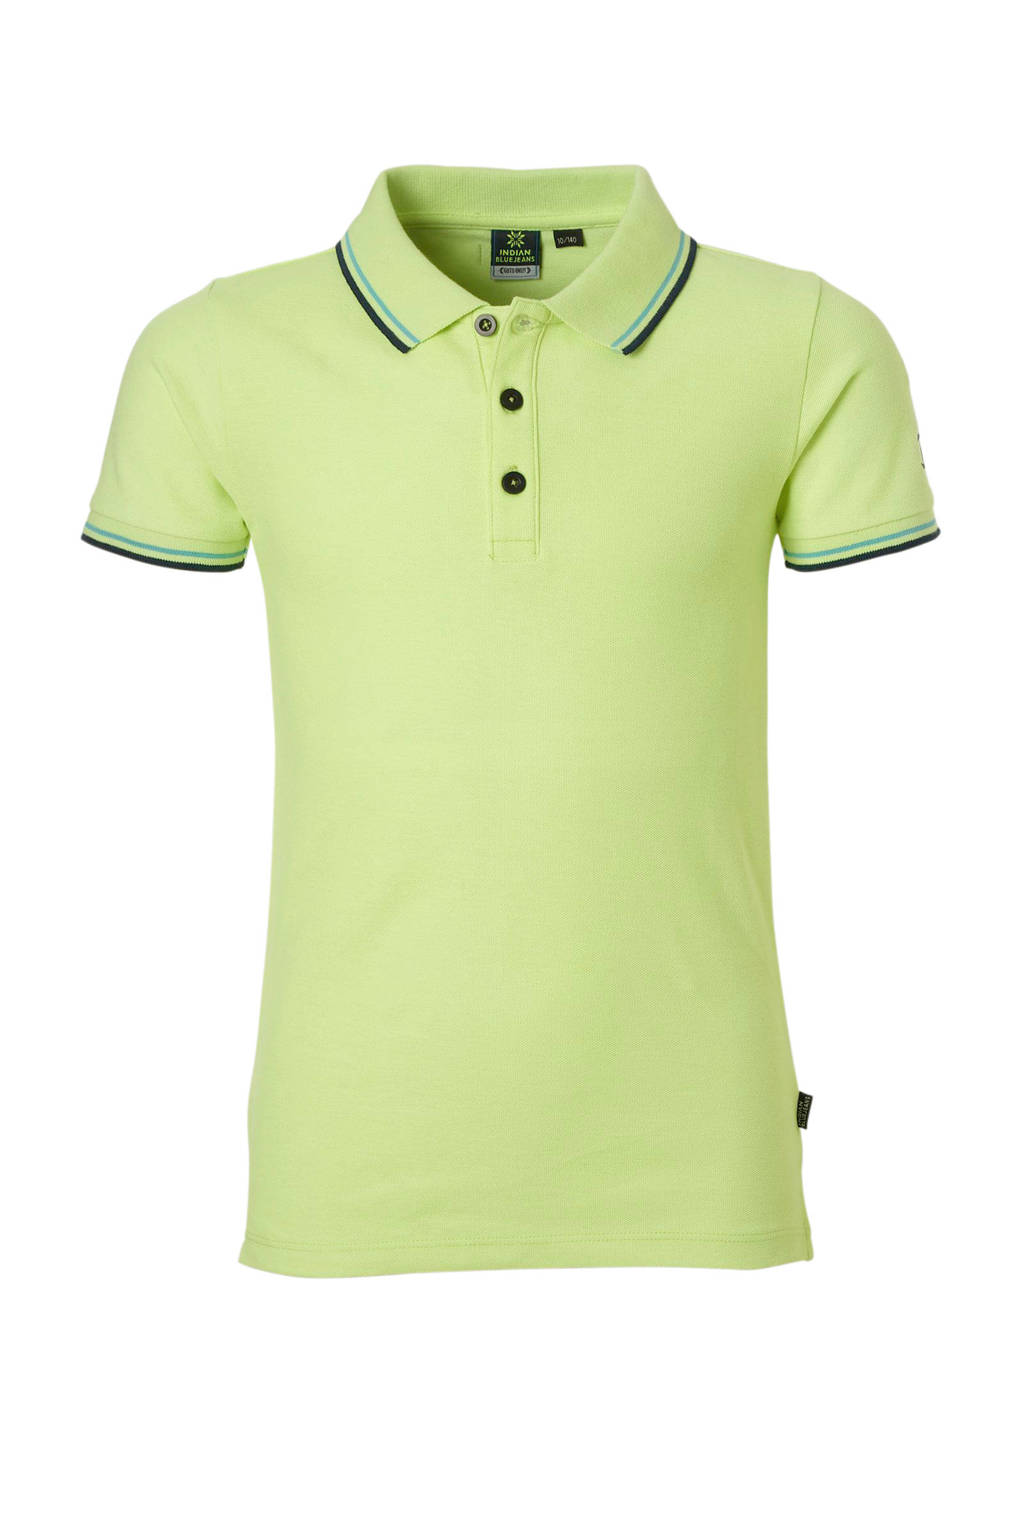 Indian Blue Jeans polo met contrastbies lime, Lime groen